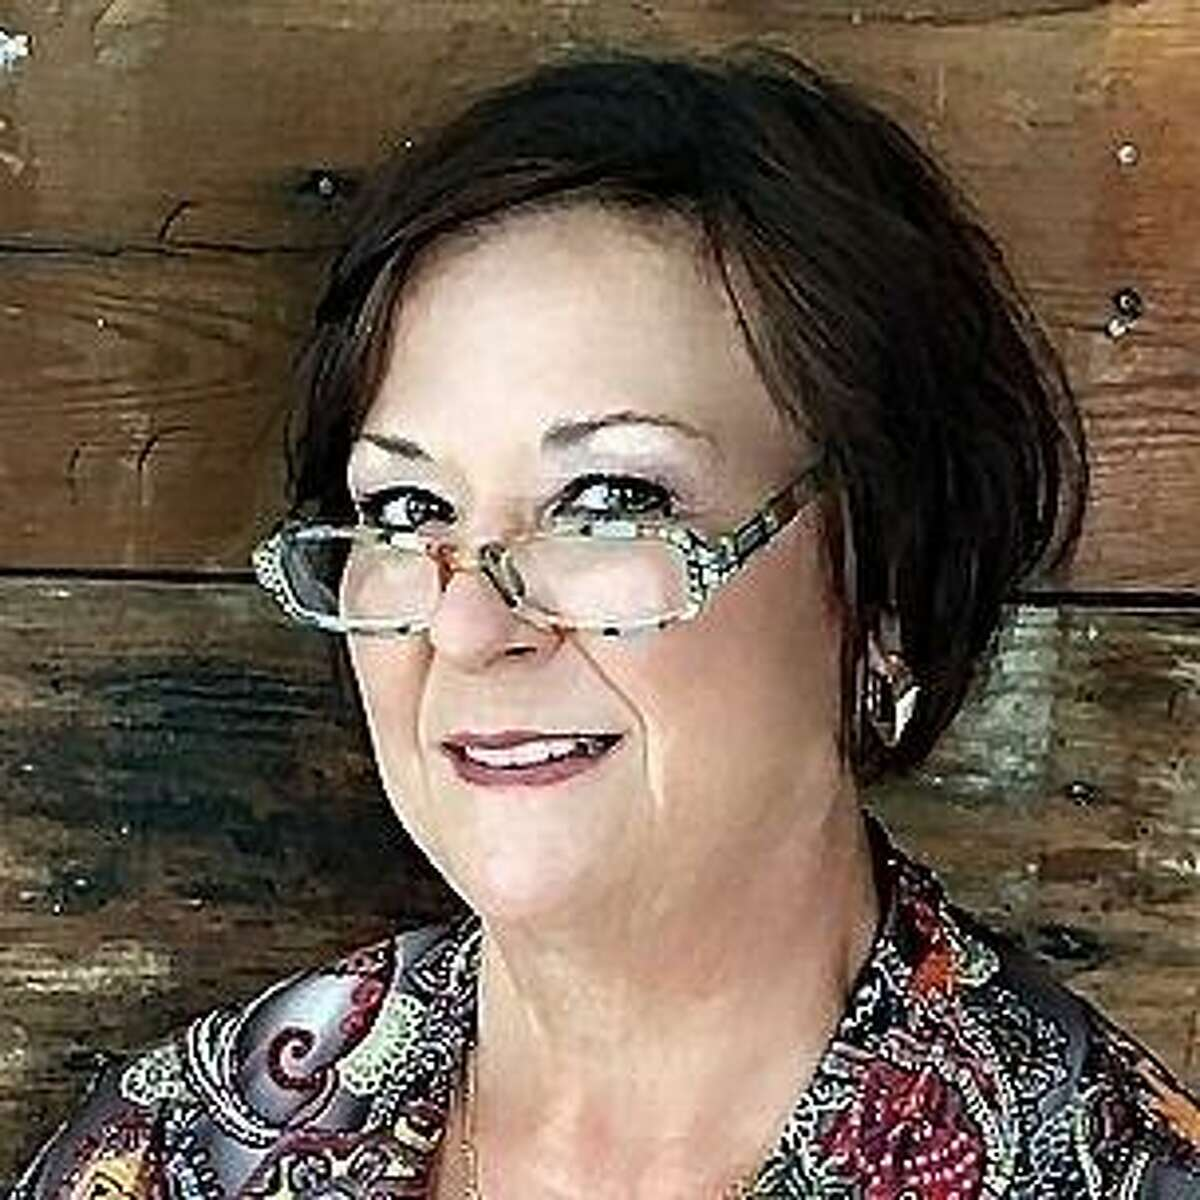 Richmond voters in November 2020 elected longtime resident and downtown business owner Rebecca Kennelly